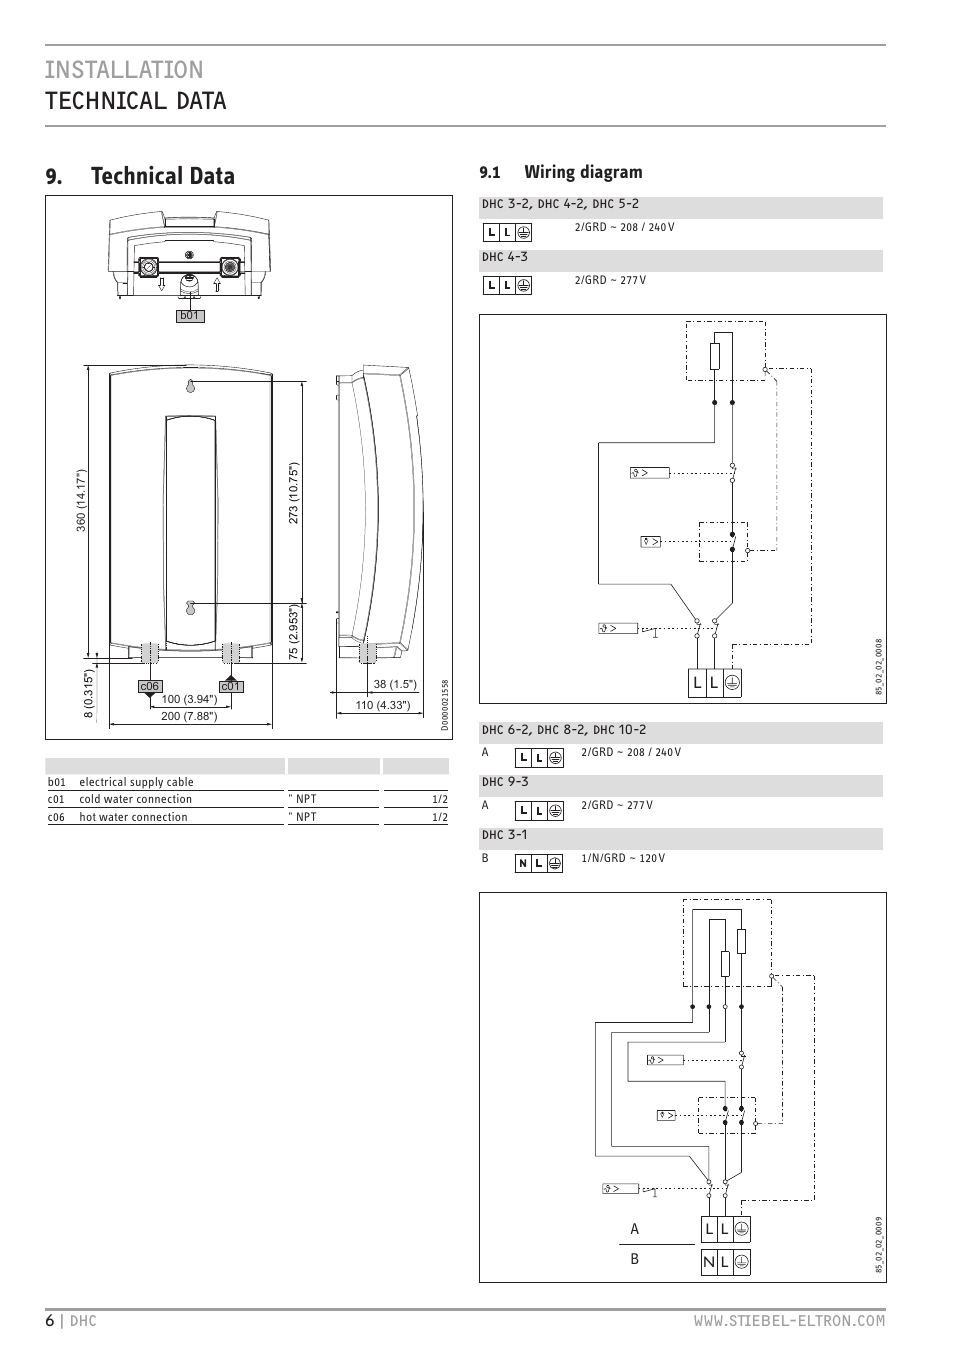 installation wiring diagram for industri installation technical data 9. technical data, 1 wiring ...